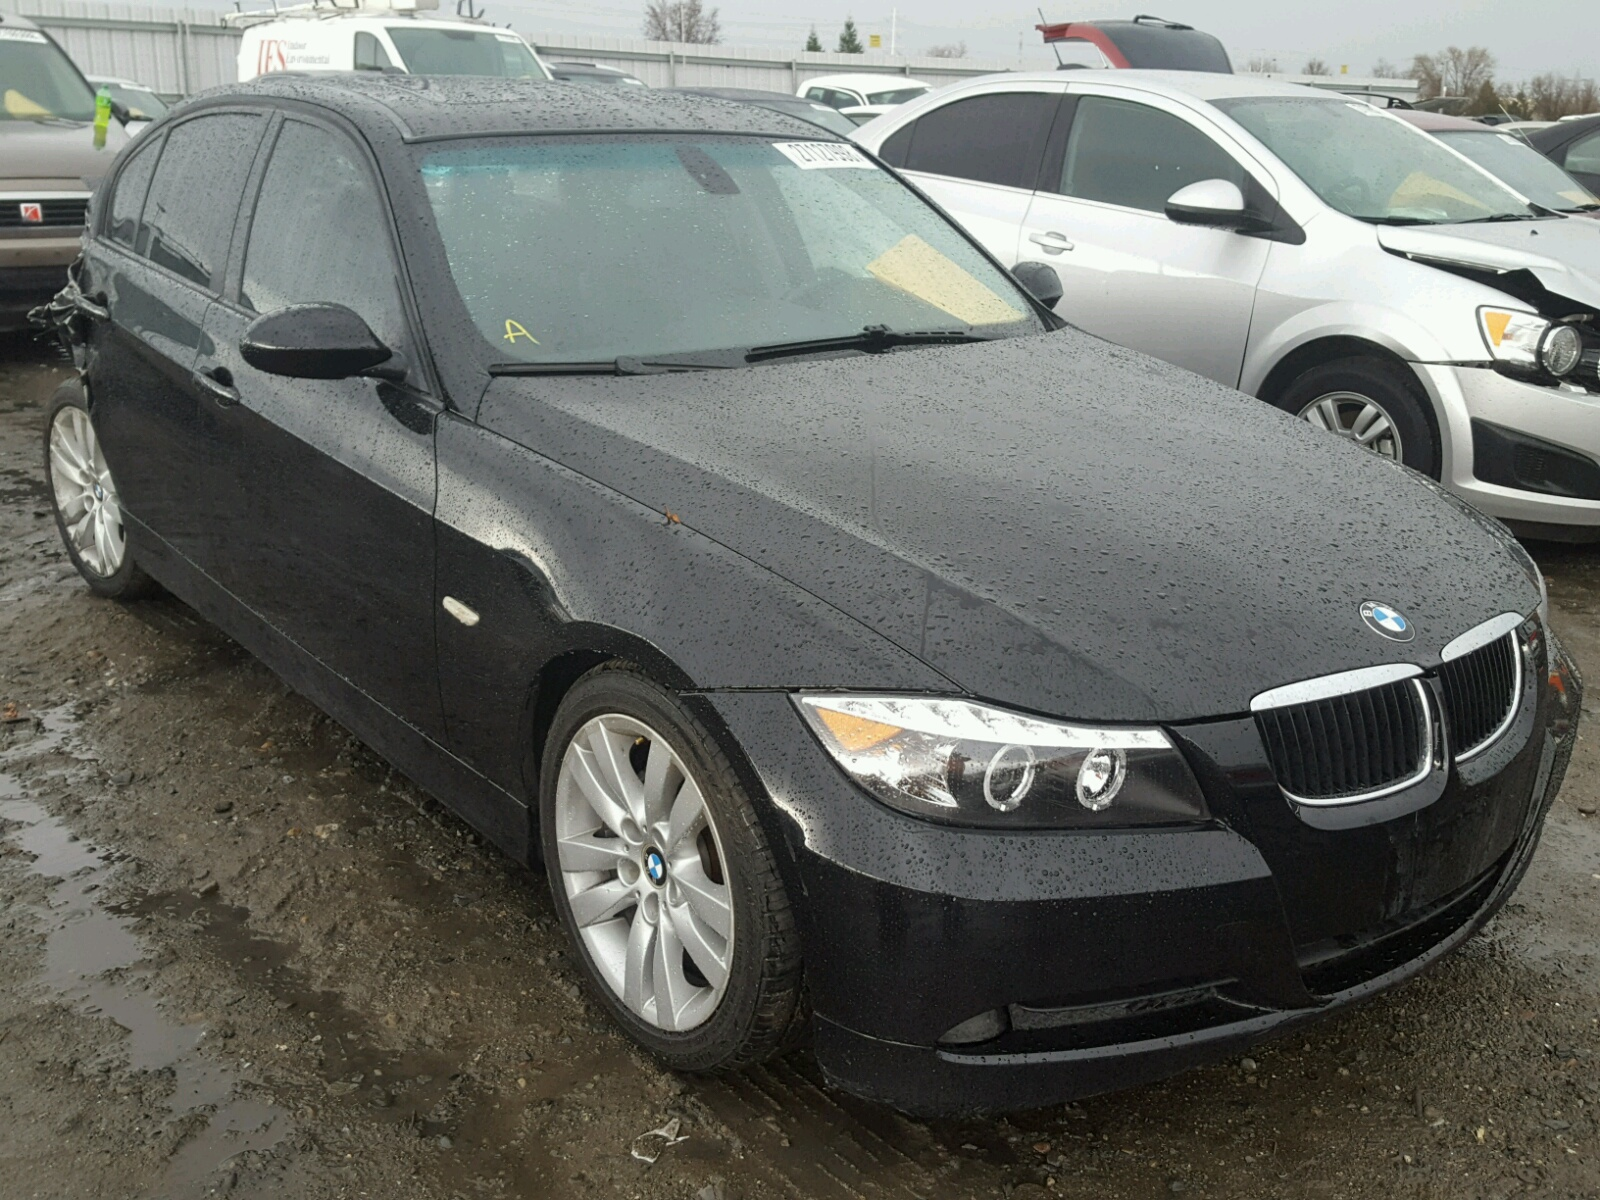 Auto Auction Ended On VIN WBABCFD BMW XI In MI - 2007 bmw 535xi